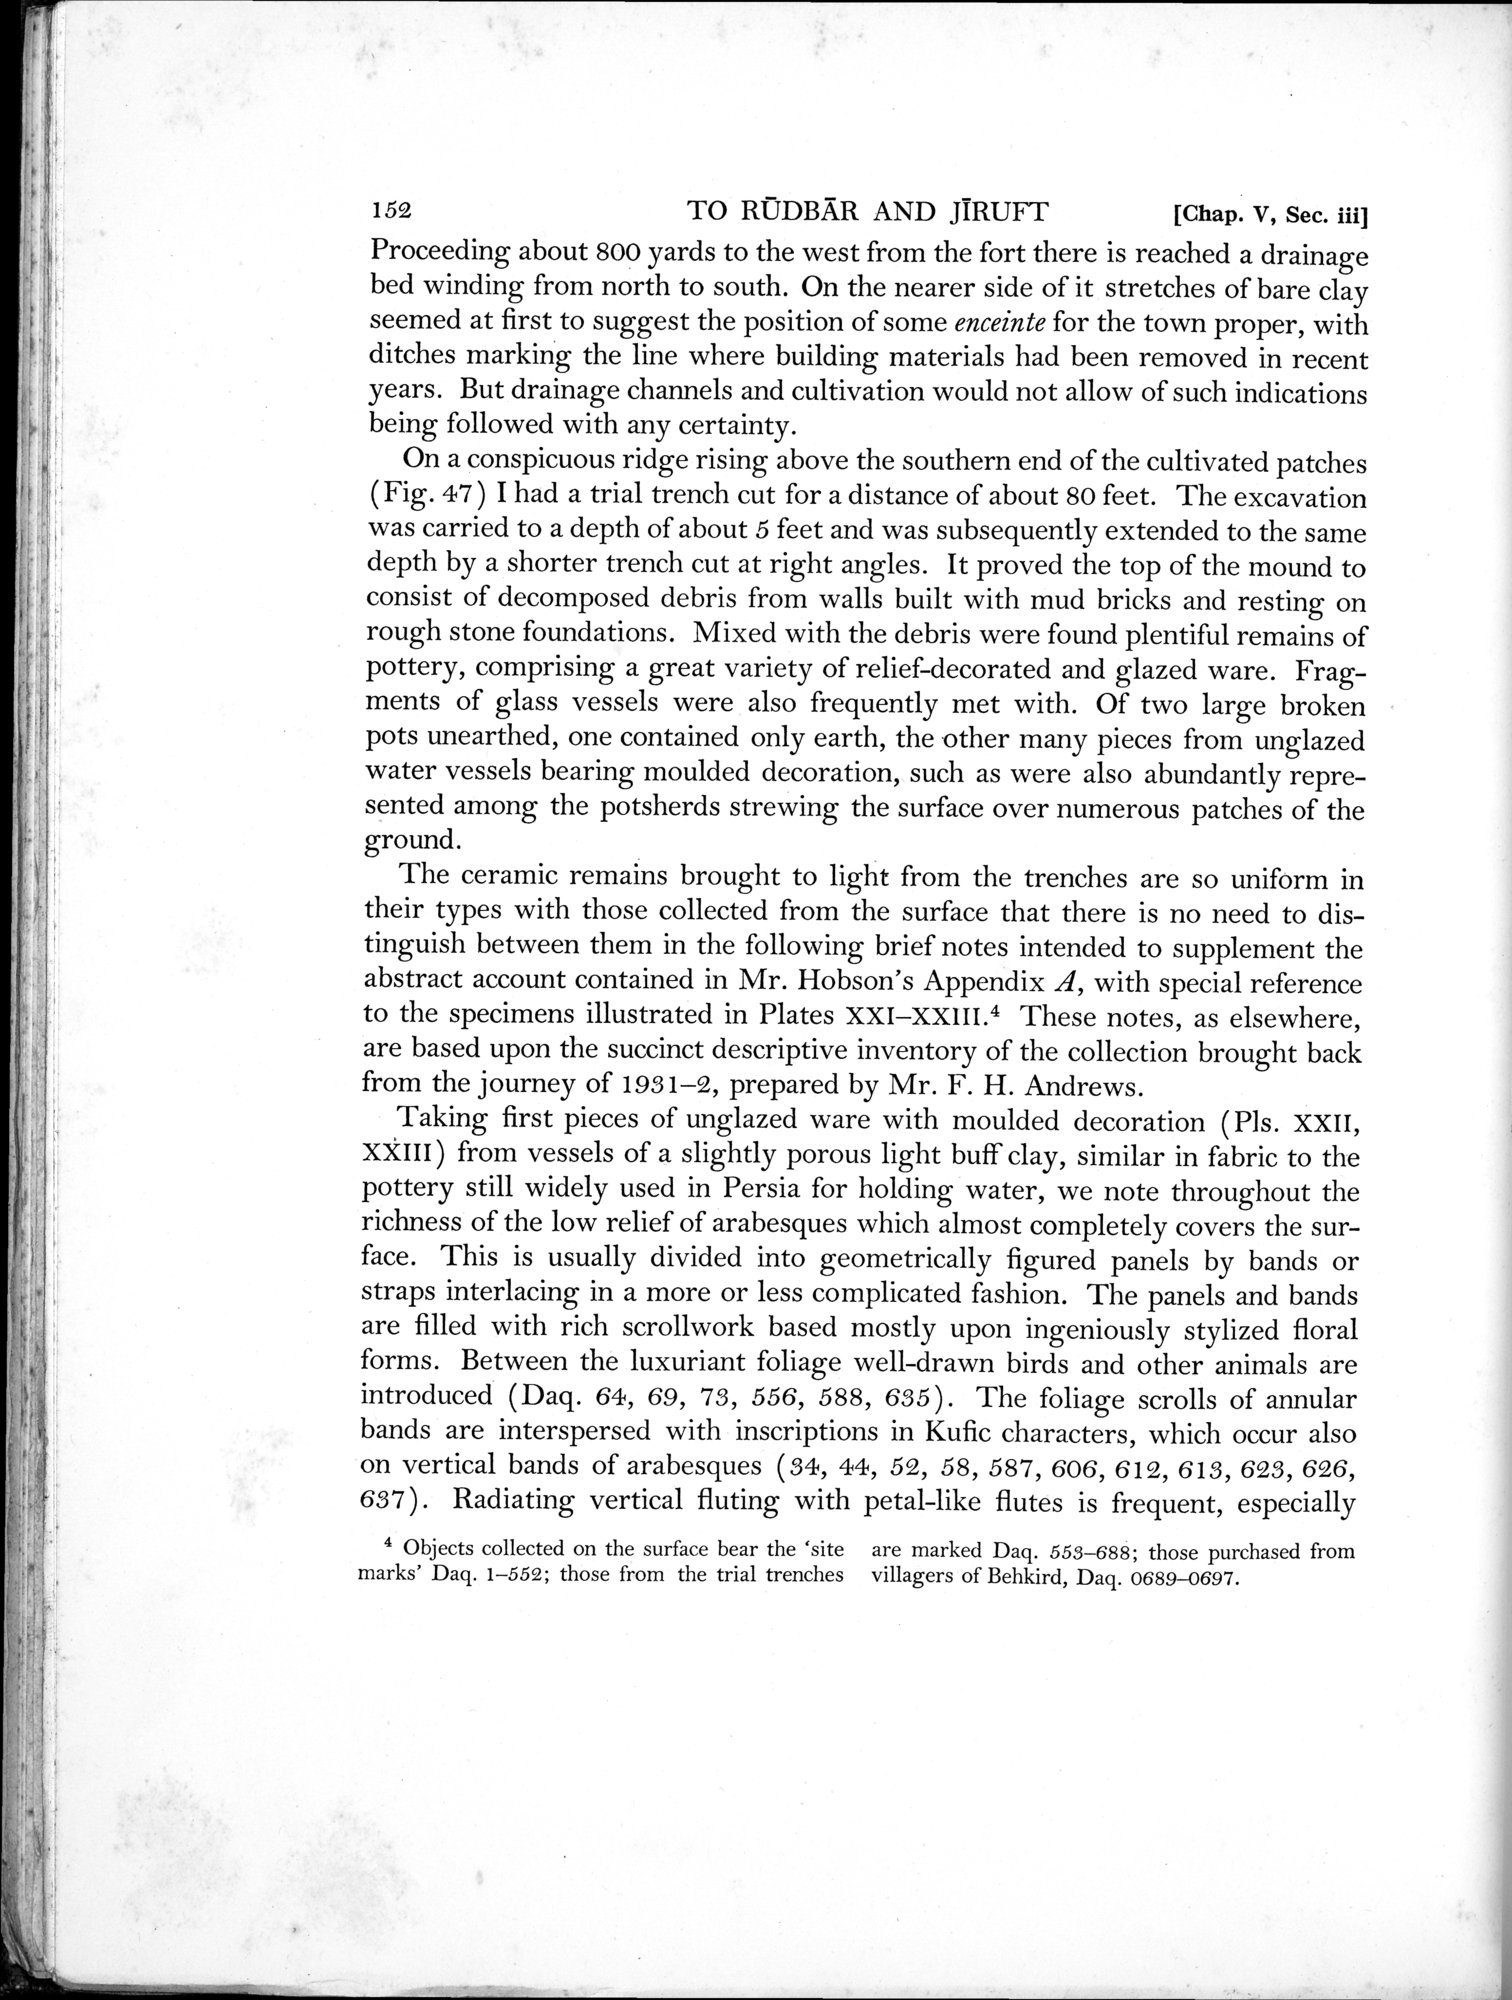 Archaeological Reconnaissances in North-Western India and South-Eastern Īrān : vol.1 / Page 212 (Grayscale High Resolution Image)